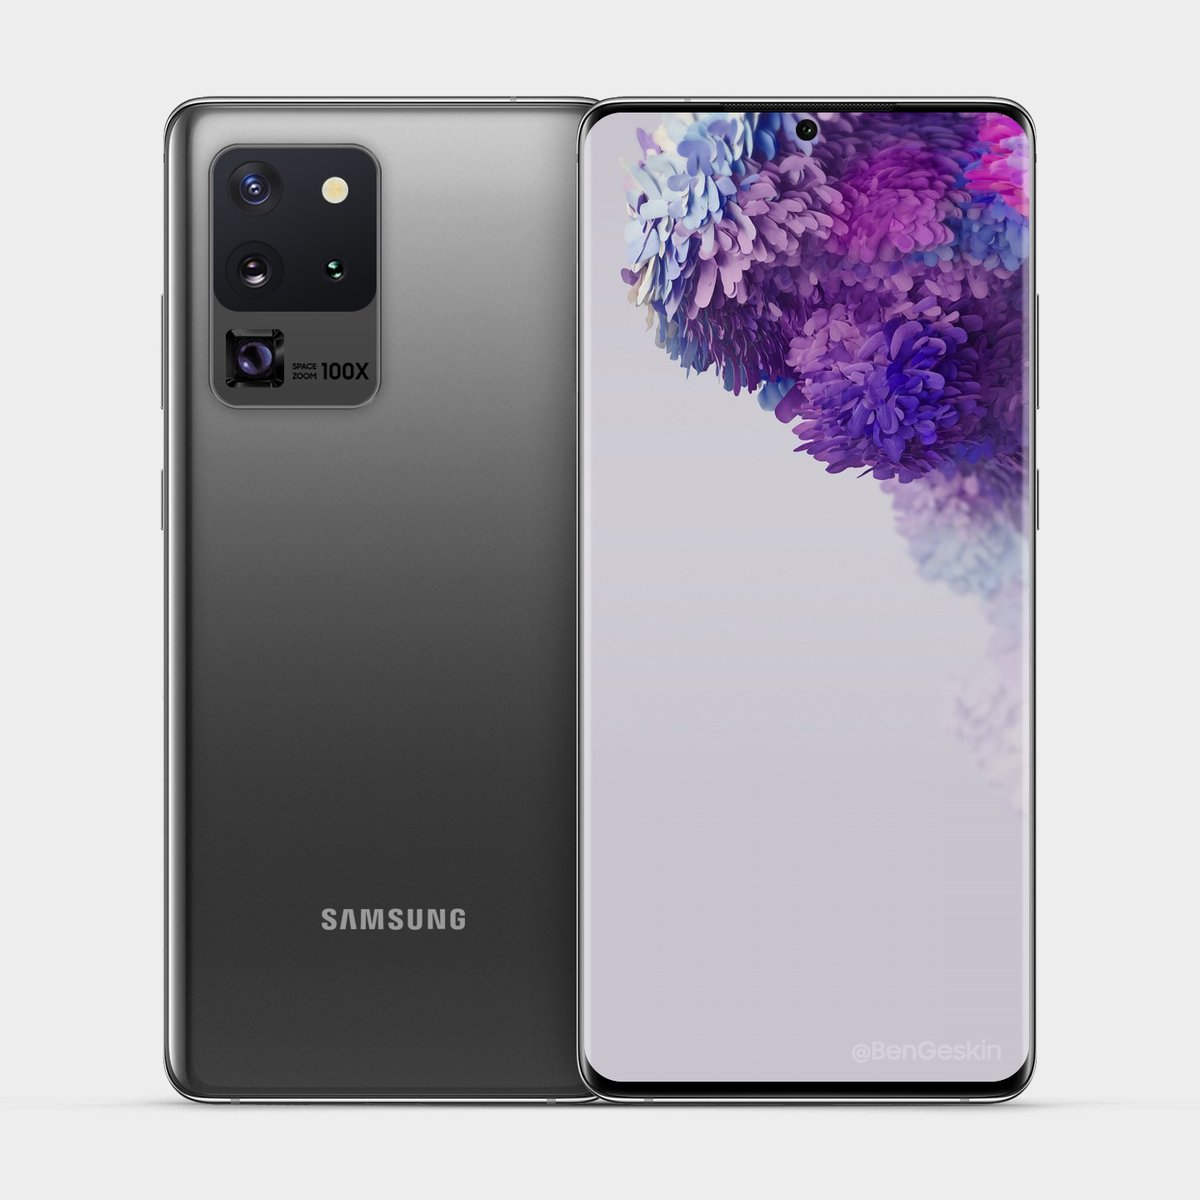 Most Accurate Picture of #SamsungGalaxy S20 & Co. #Samsung #GalaxyS20 #S20 #galaxys20ultra #galaxys20plus #SamsungUnpacked #Unpacked #Unpacked2020 pic.twitter.com/UBwZj5T1my